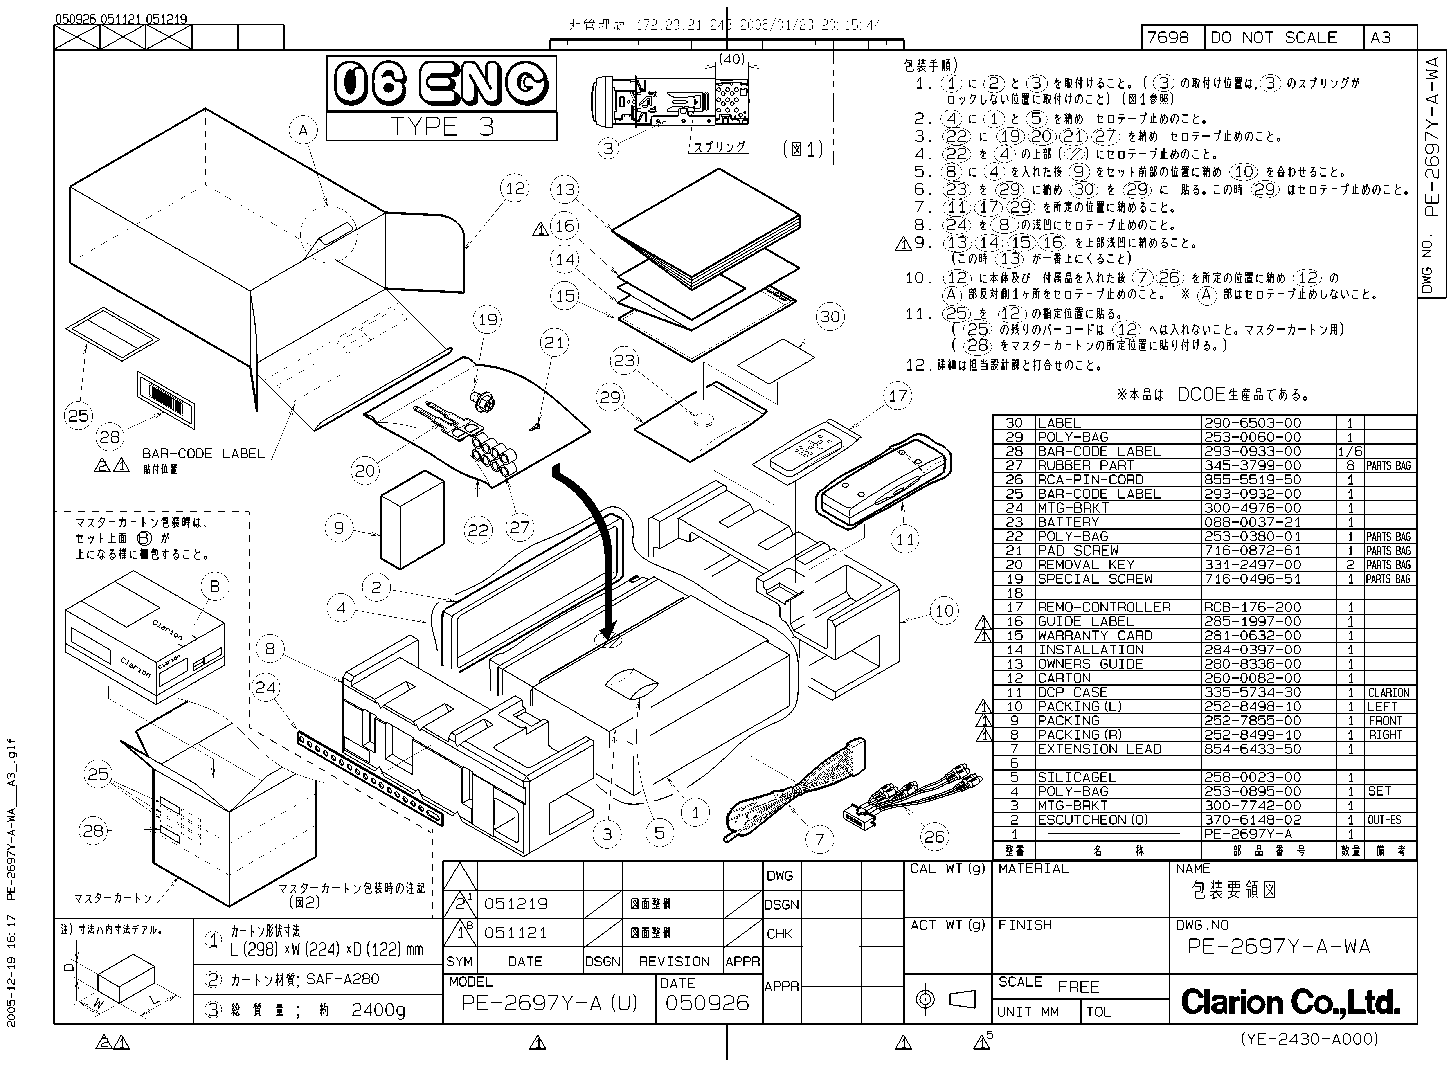 CLARION PE2697YA-WA Service Manual download, schematics